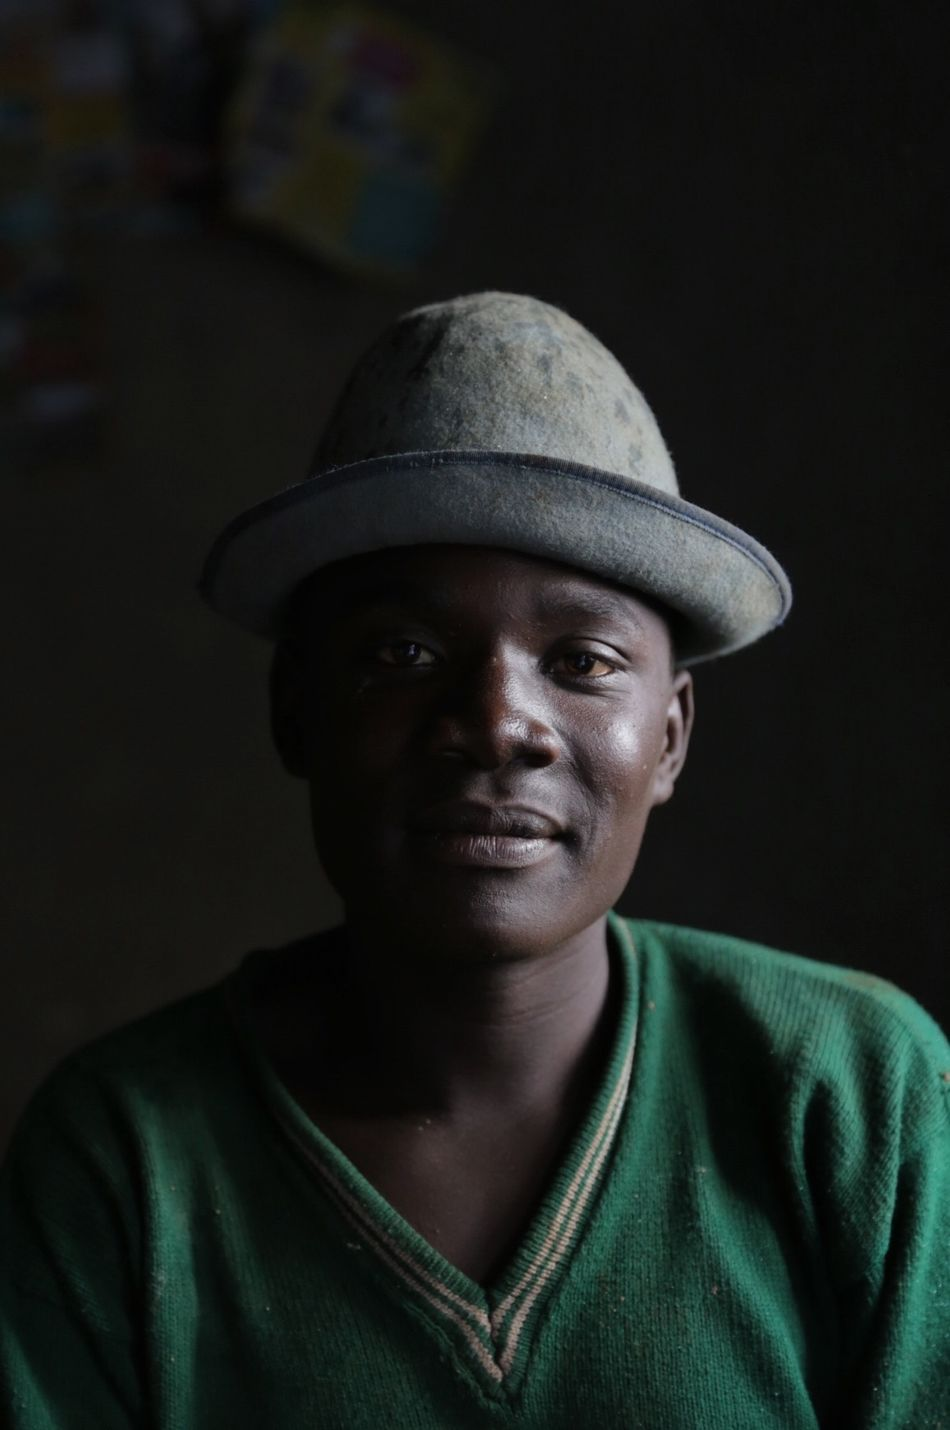 I'm currently in Rwanda hiking the Congo-Nile trail. Pregnant with rain the sky opened up and Cyriaque invited me inside to shelter from the rain. Portrait Portrait Of A Friend Rwanda